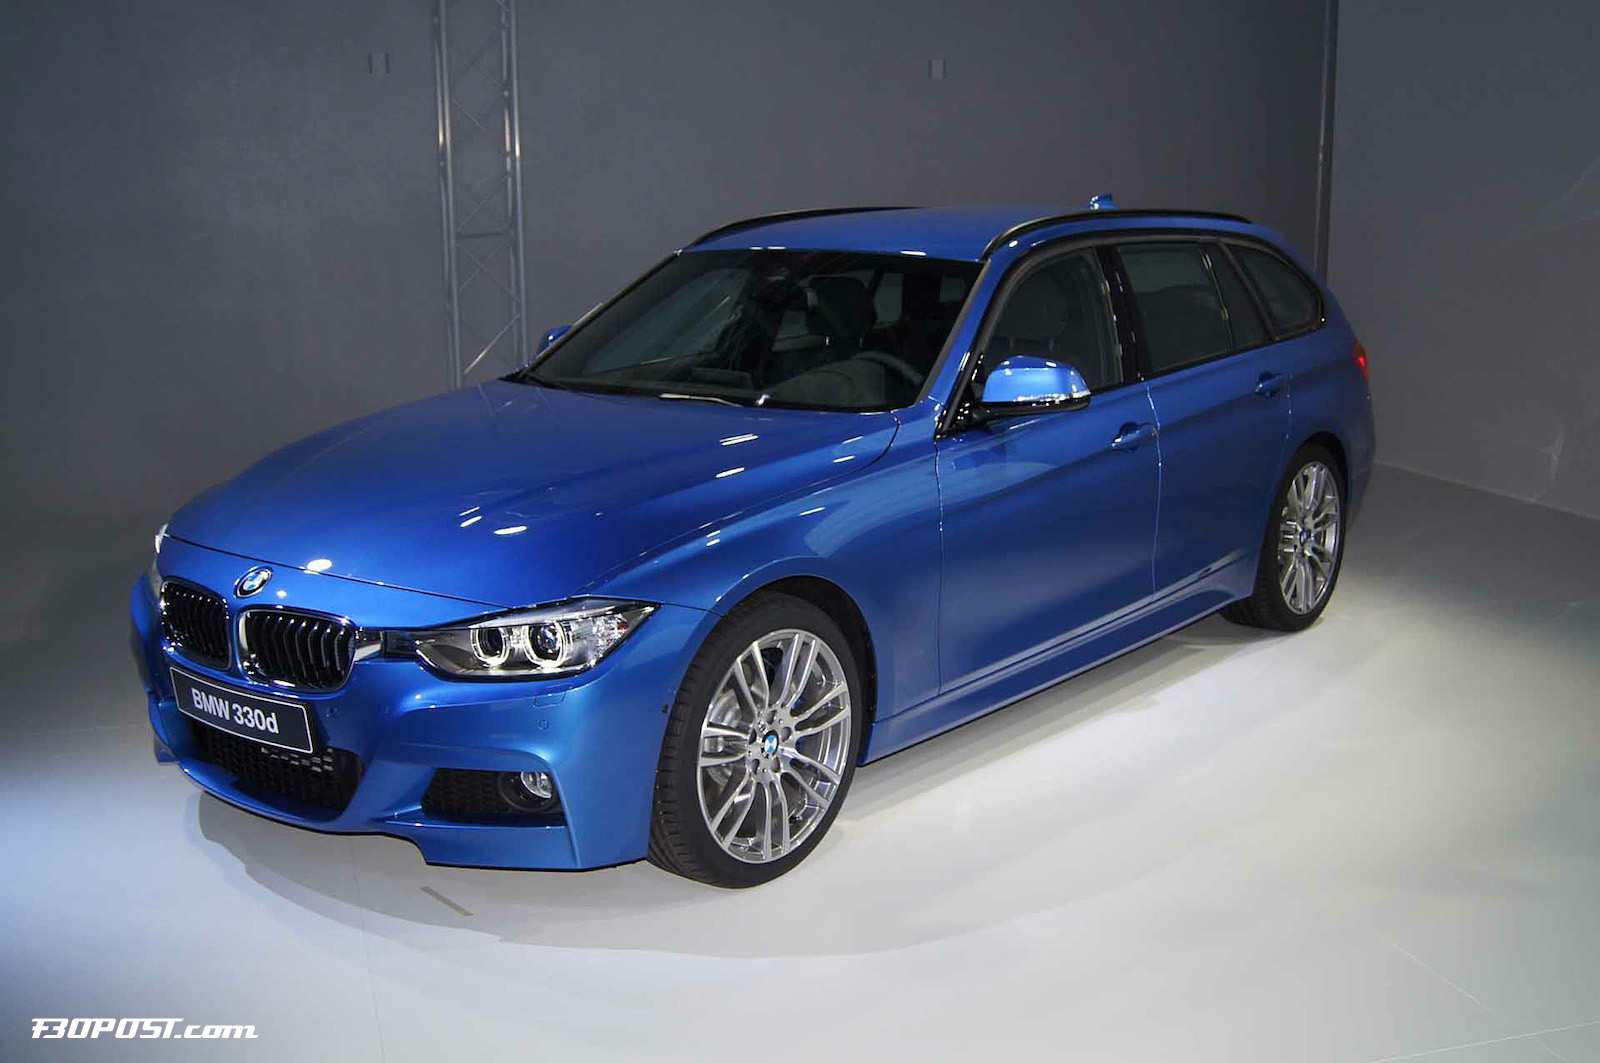 98 Best Review 2019 Bmw F31 Engine for 2019 Bmw F31